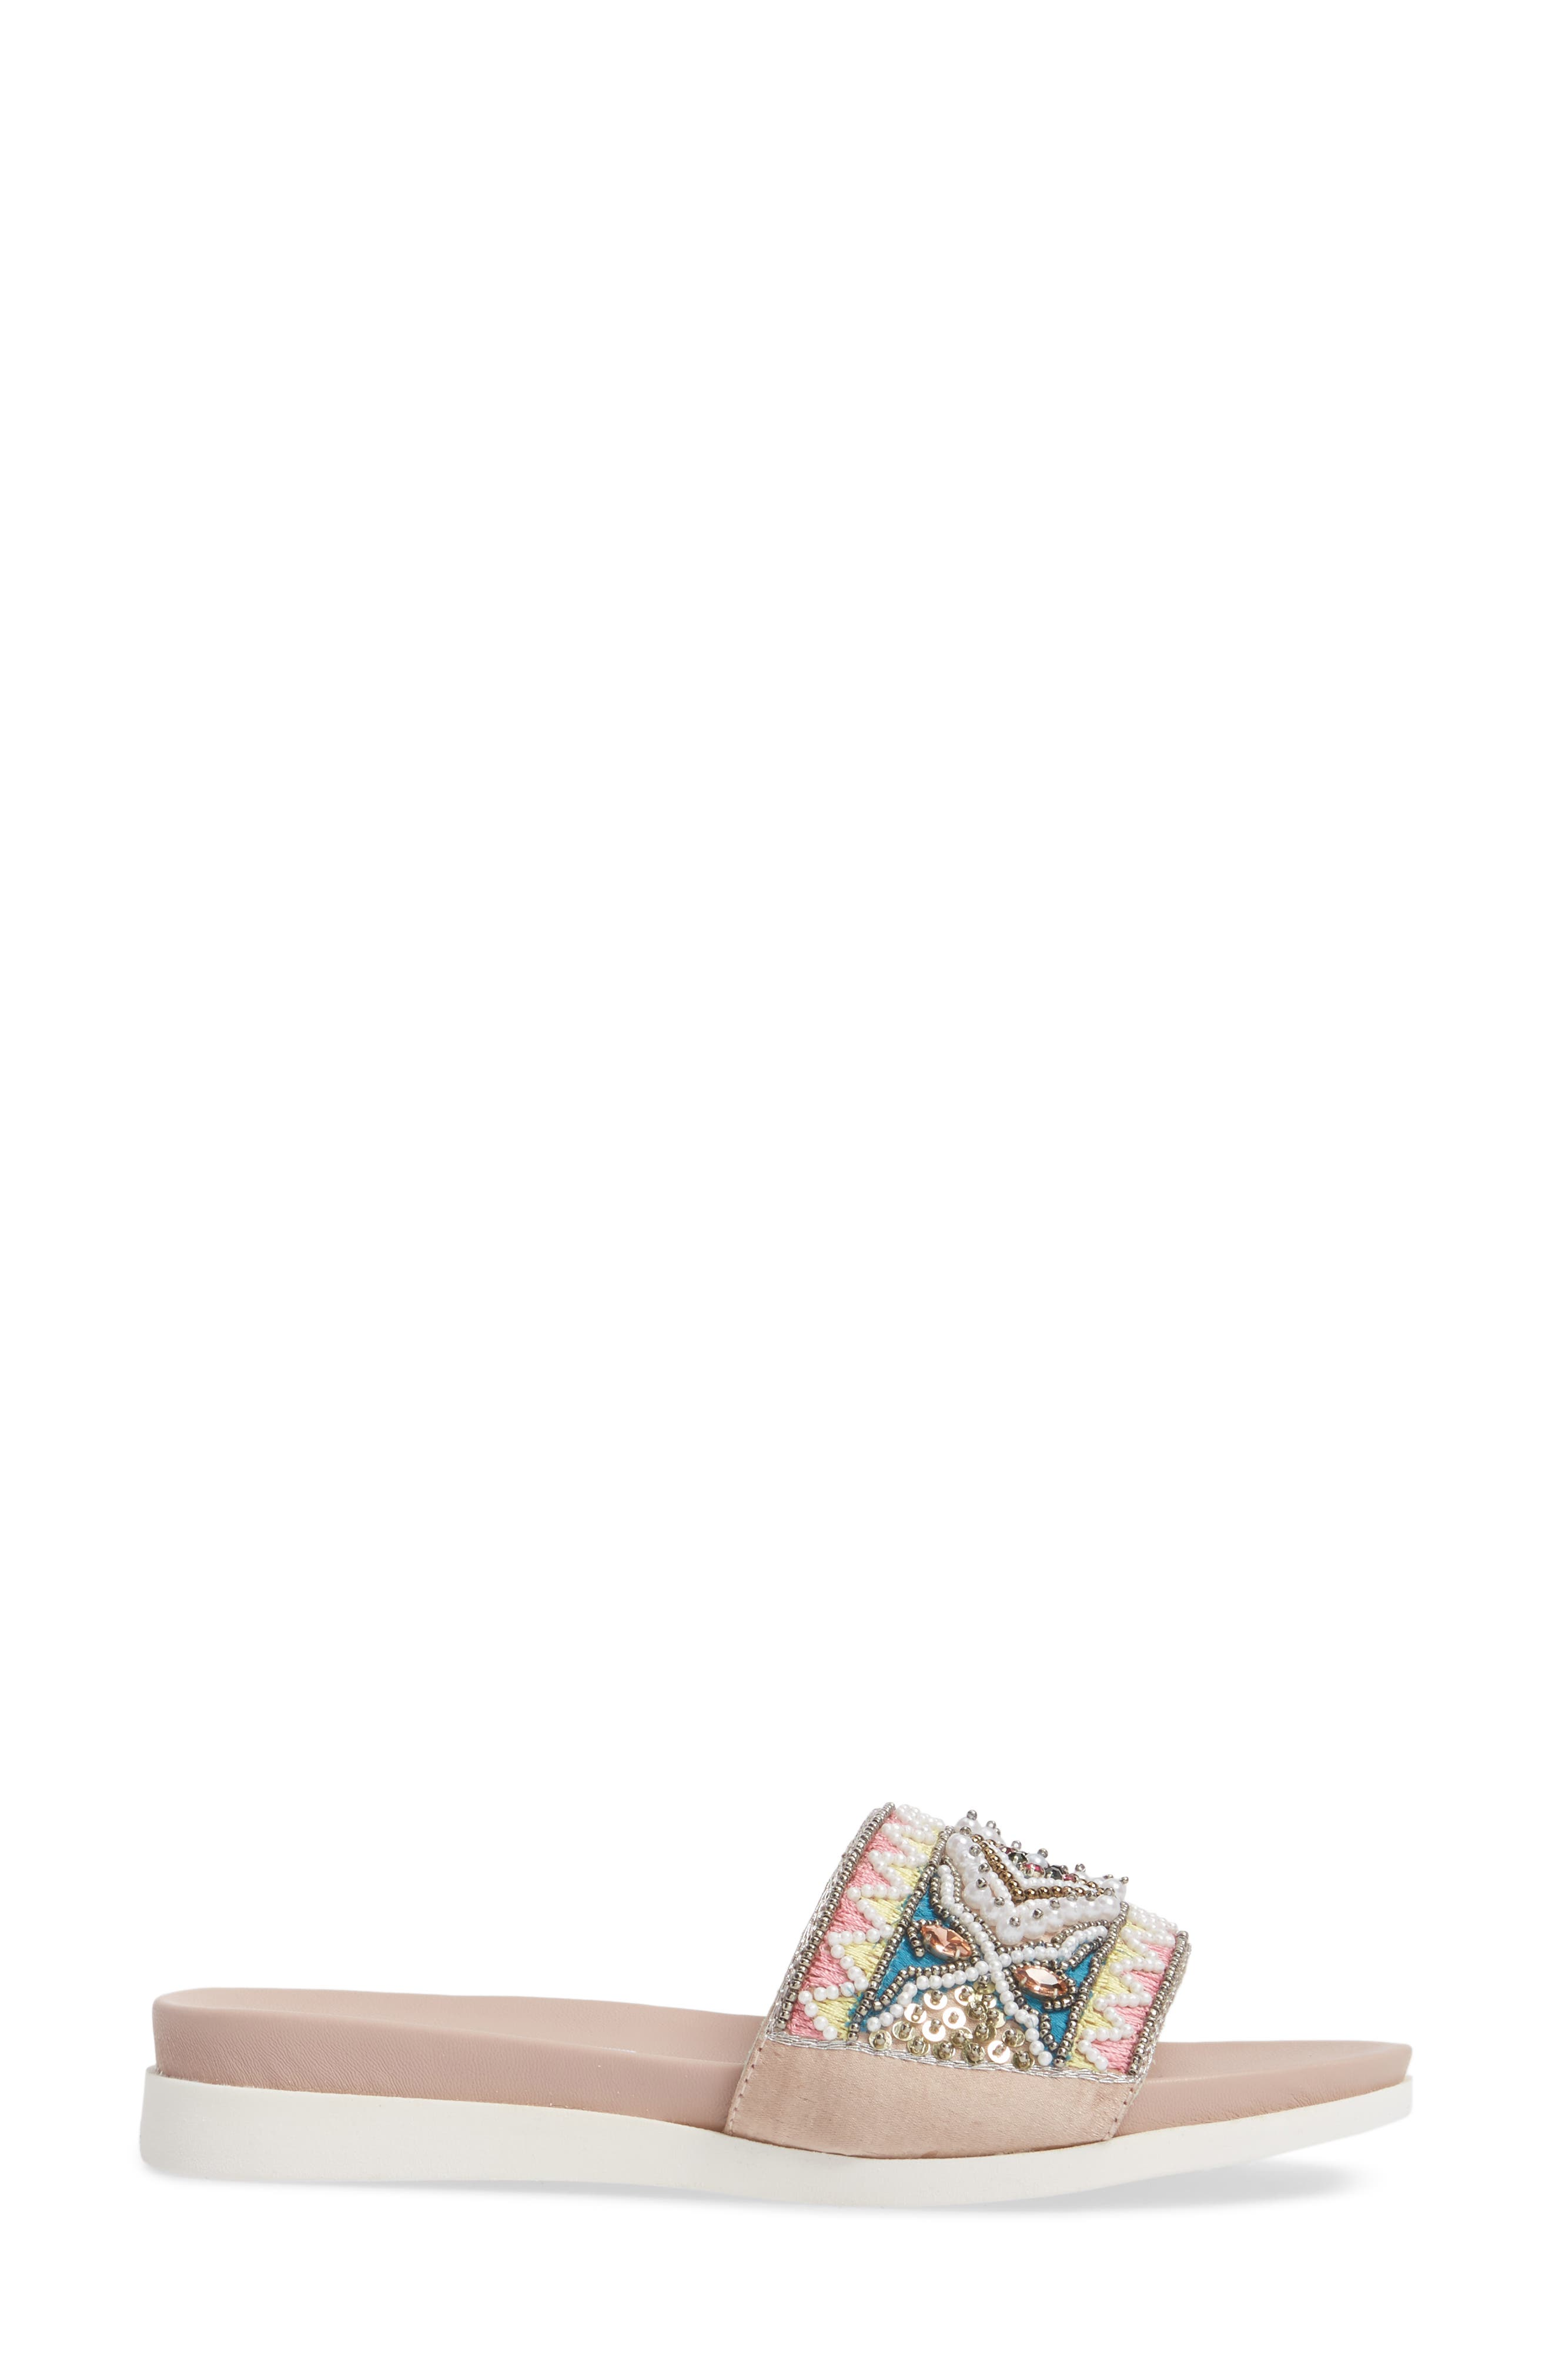 Thalia Beaded Slide Sandal,                             Alternate thumbnail 3, color,                             400